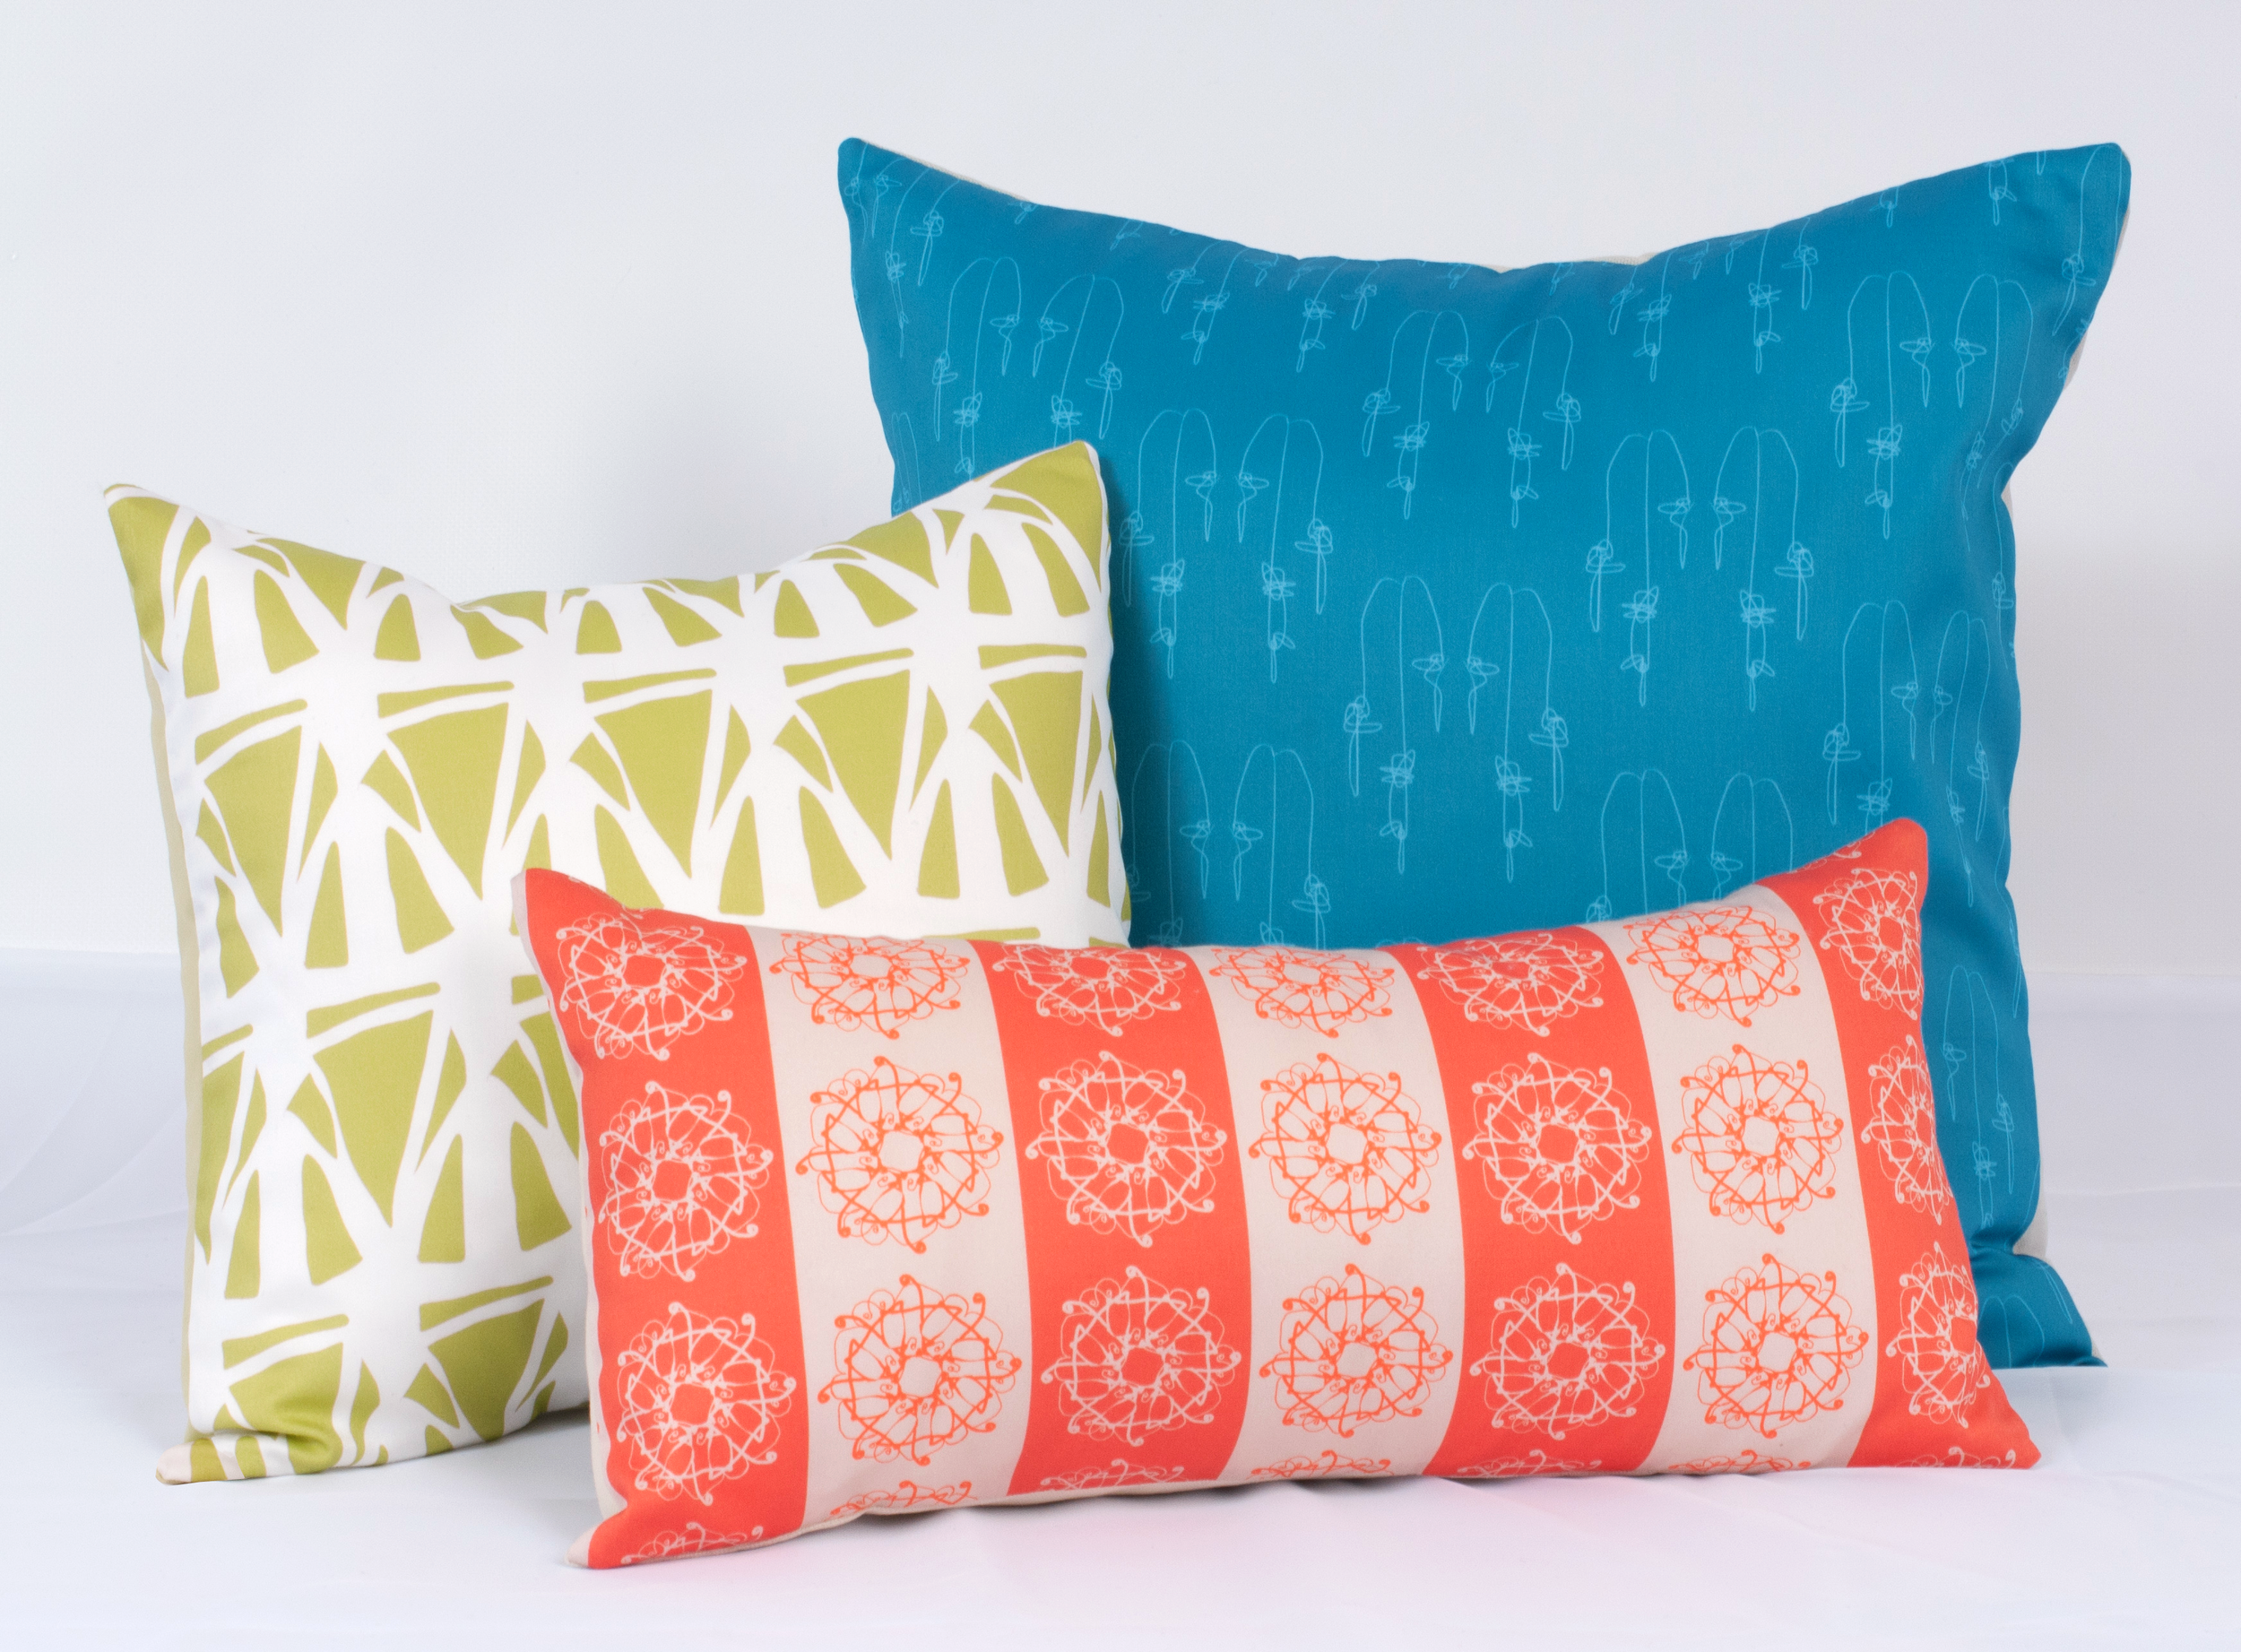 Pillow Covers Shawn Sargent Designs